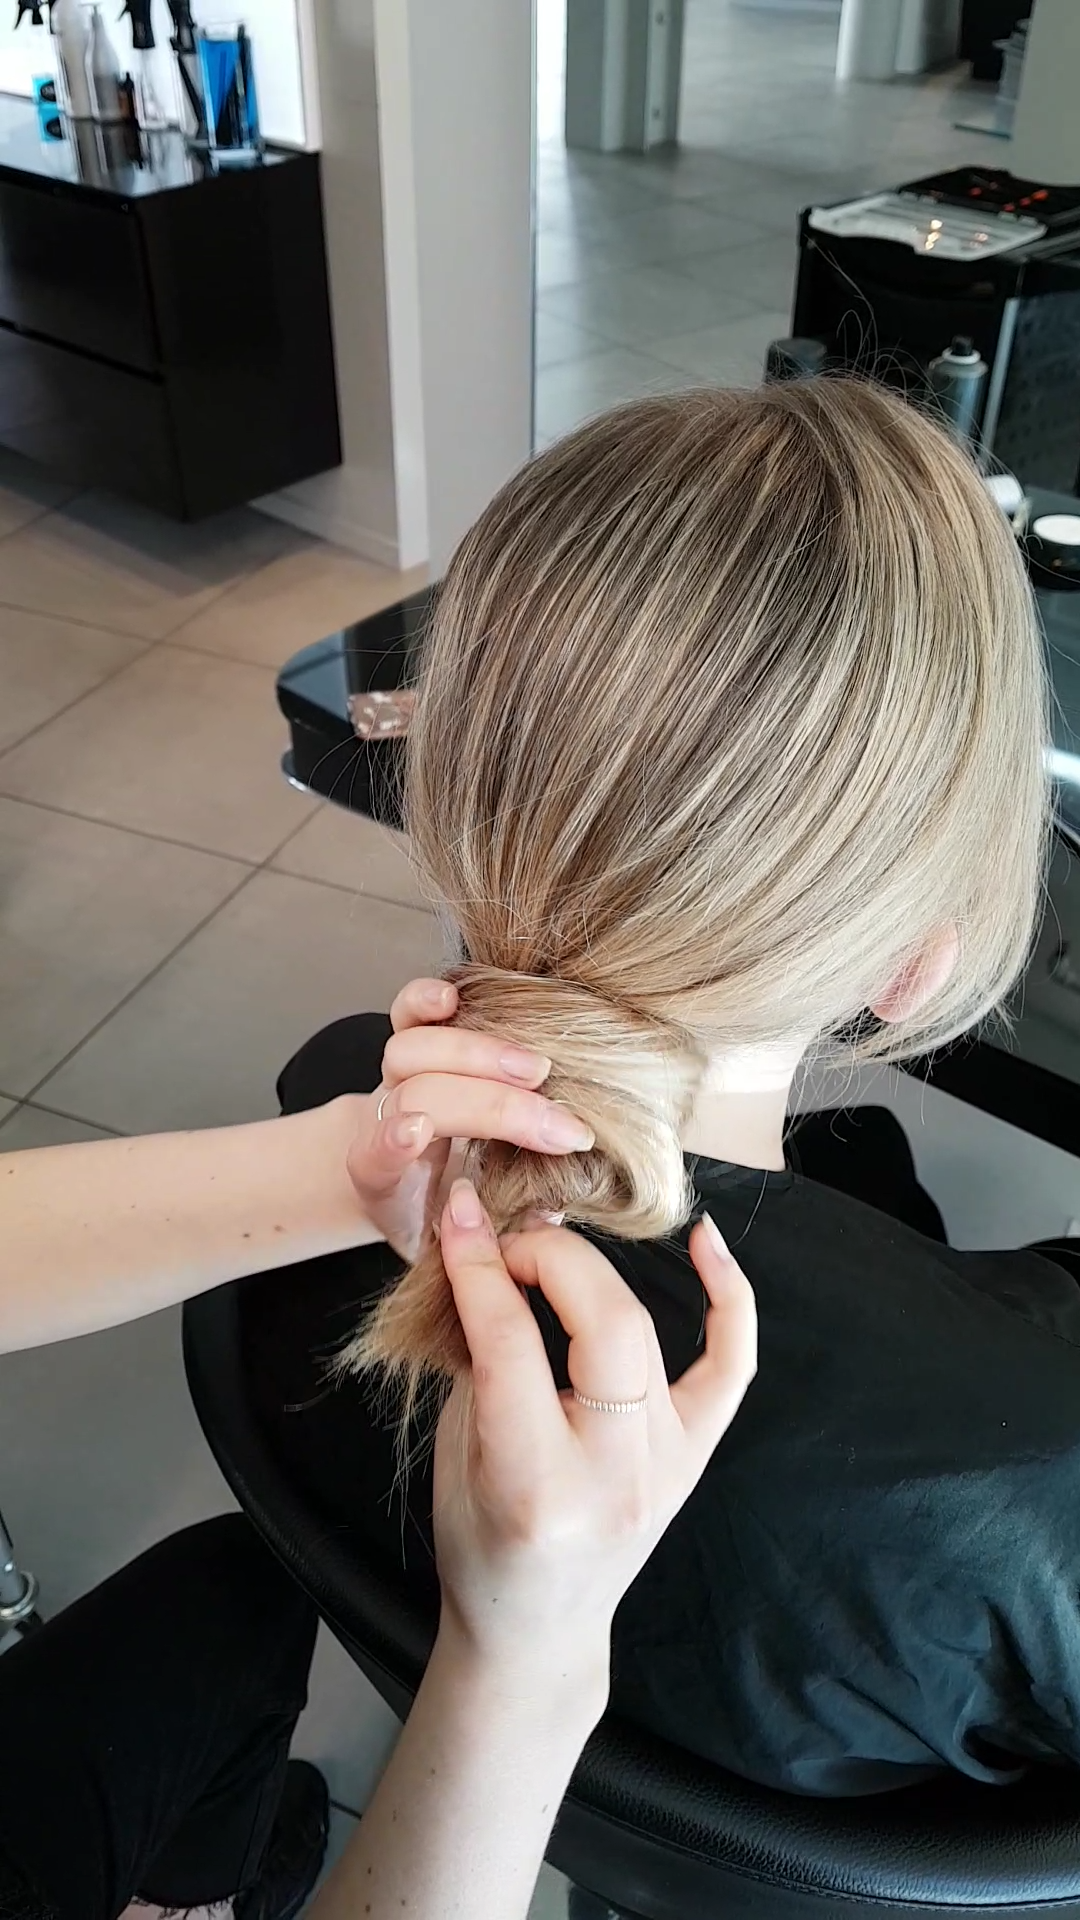 Step 4 - Take the ponytail and twist it around into a knot. Find a shape you like and start to pin the bun into place. To finsh pull out some loose hairs around the face and seal with Label. m Texturizing Volume spray to give a softer natural look.